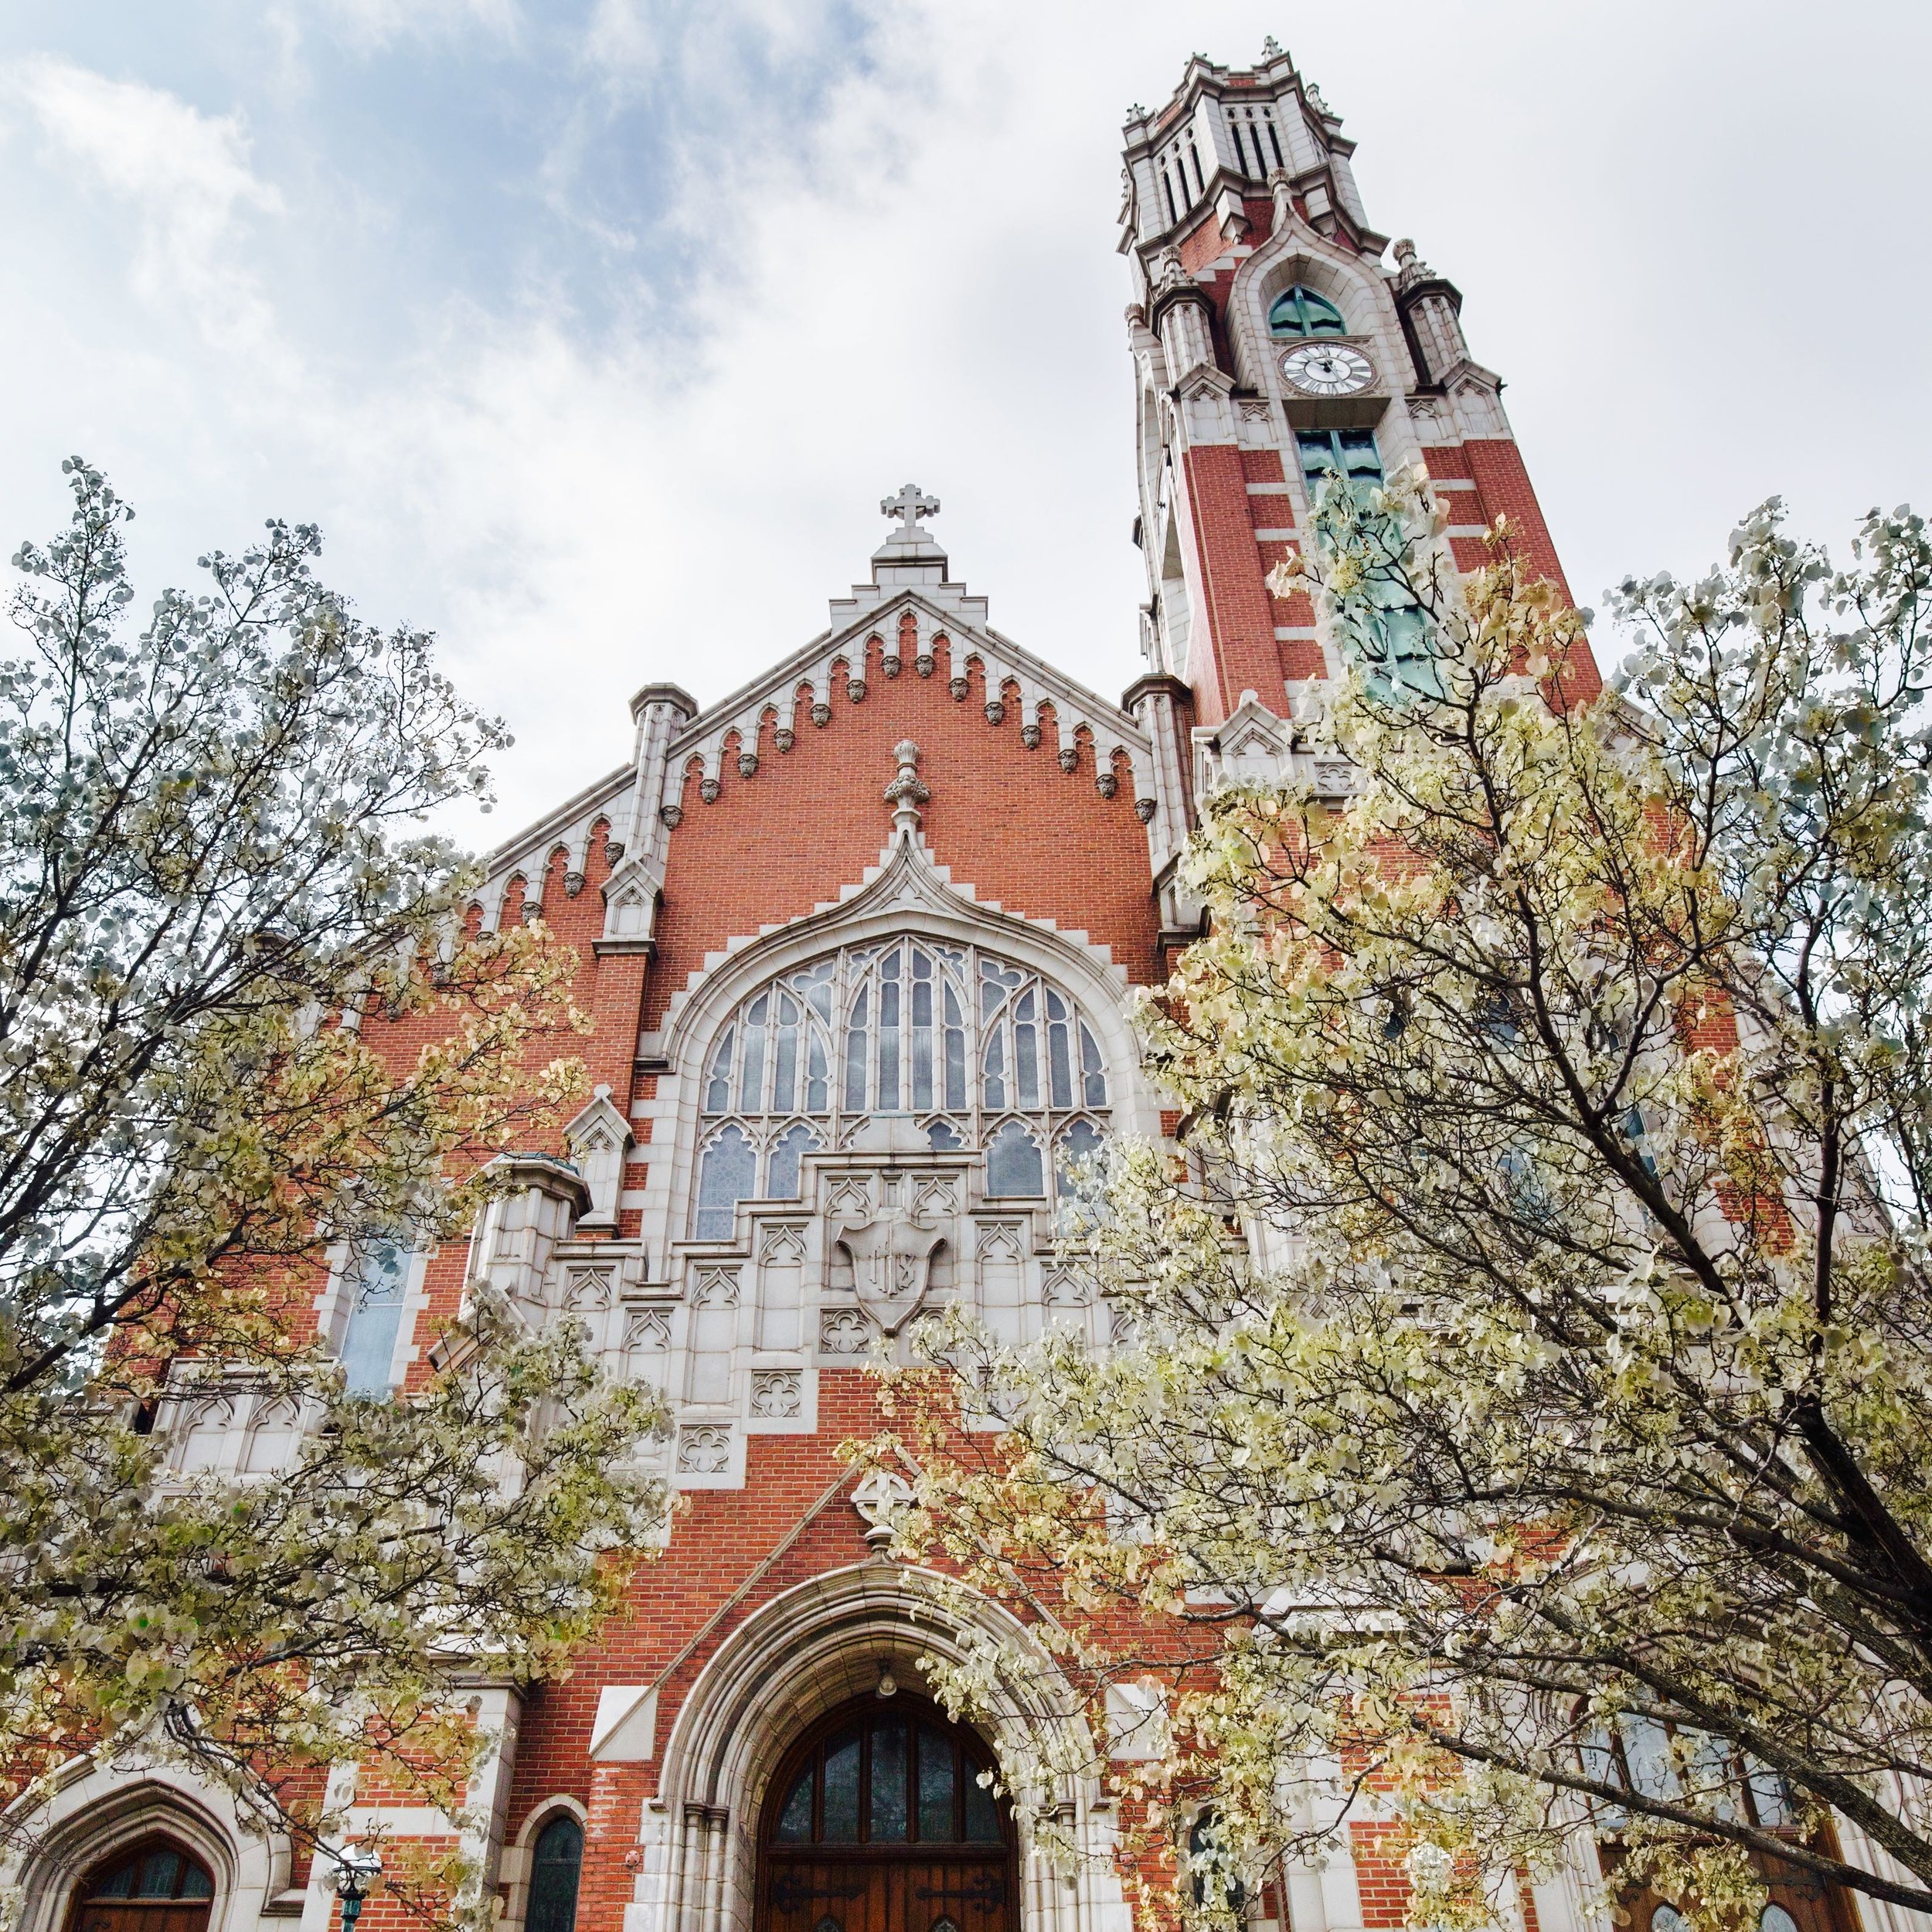 St. Roch Church is a Catholic parish located in the Skinker-DeBaliviere neighborhood in the City of St. Louis. St. Roch has been part of the neighborhood for more than 100 years, serving the community as a place of faith, fellowship, and learning.